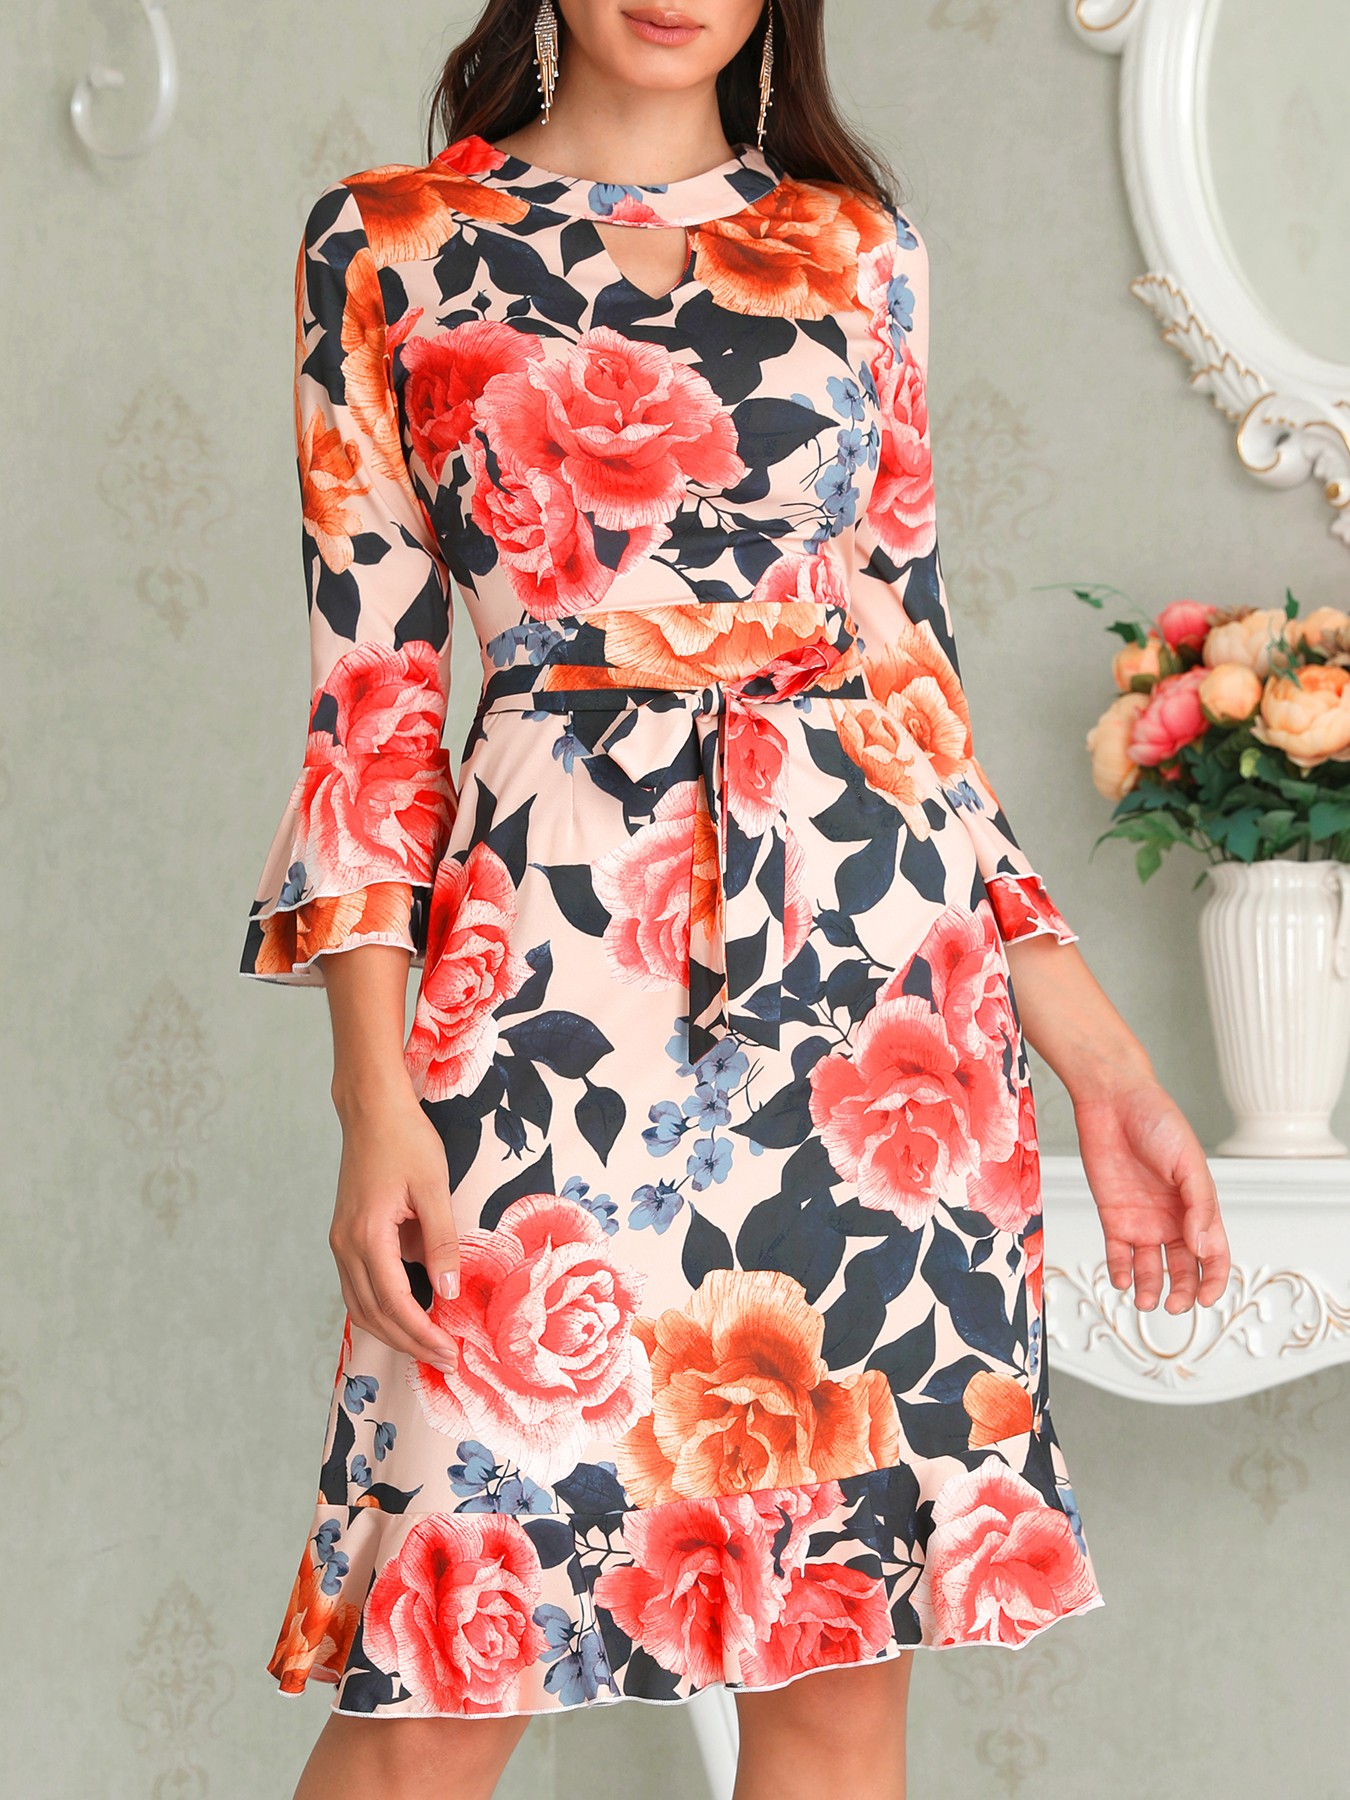 boutiquefeel / Floral Print Cutout Ruffles Flared Sleeve Casual Dress